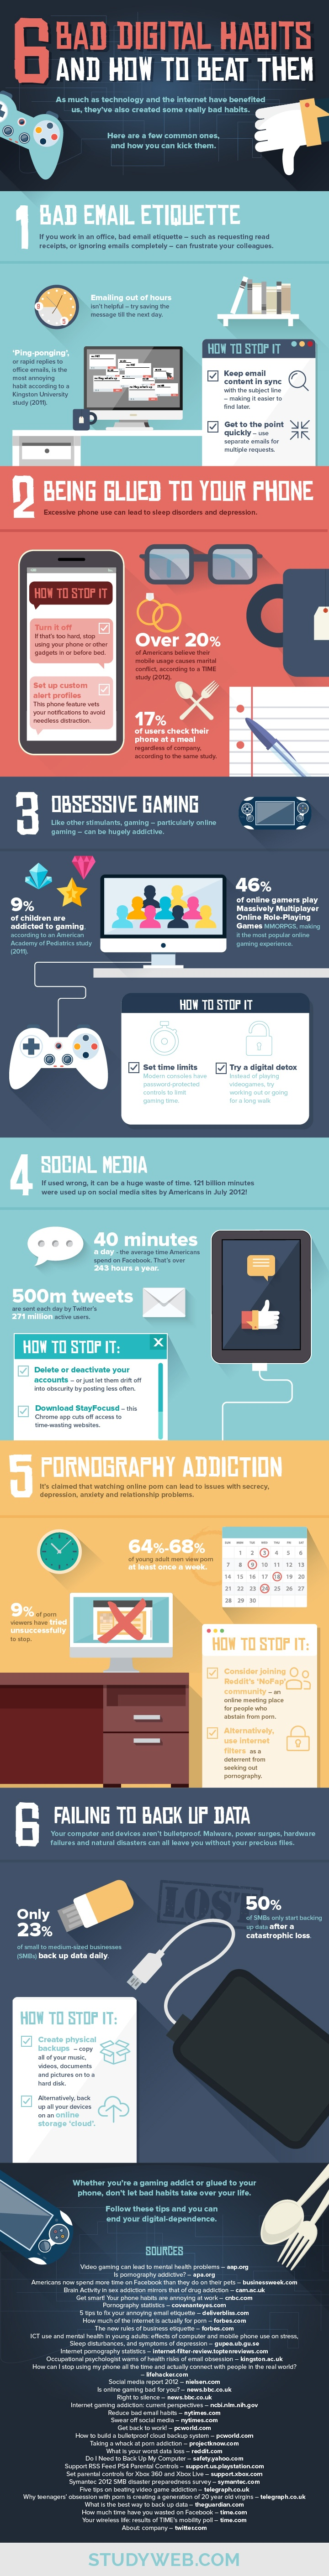 6 Bad Digital Habits and How to Beat Them Infographic